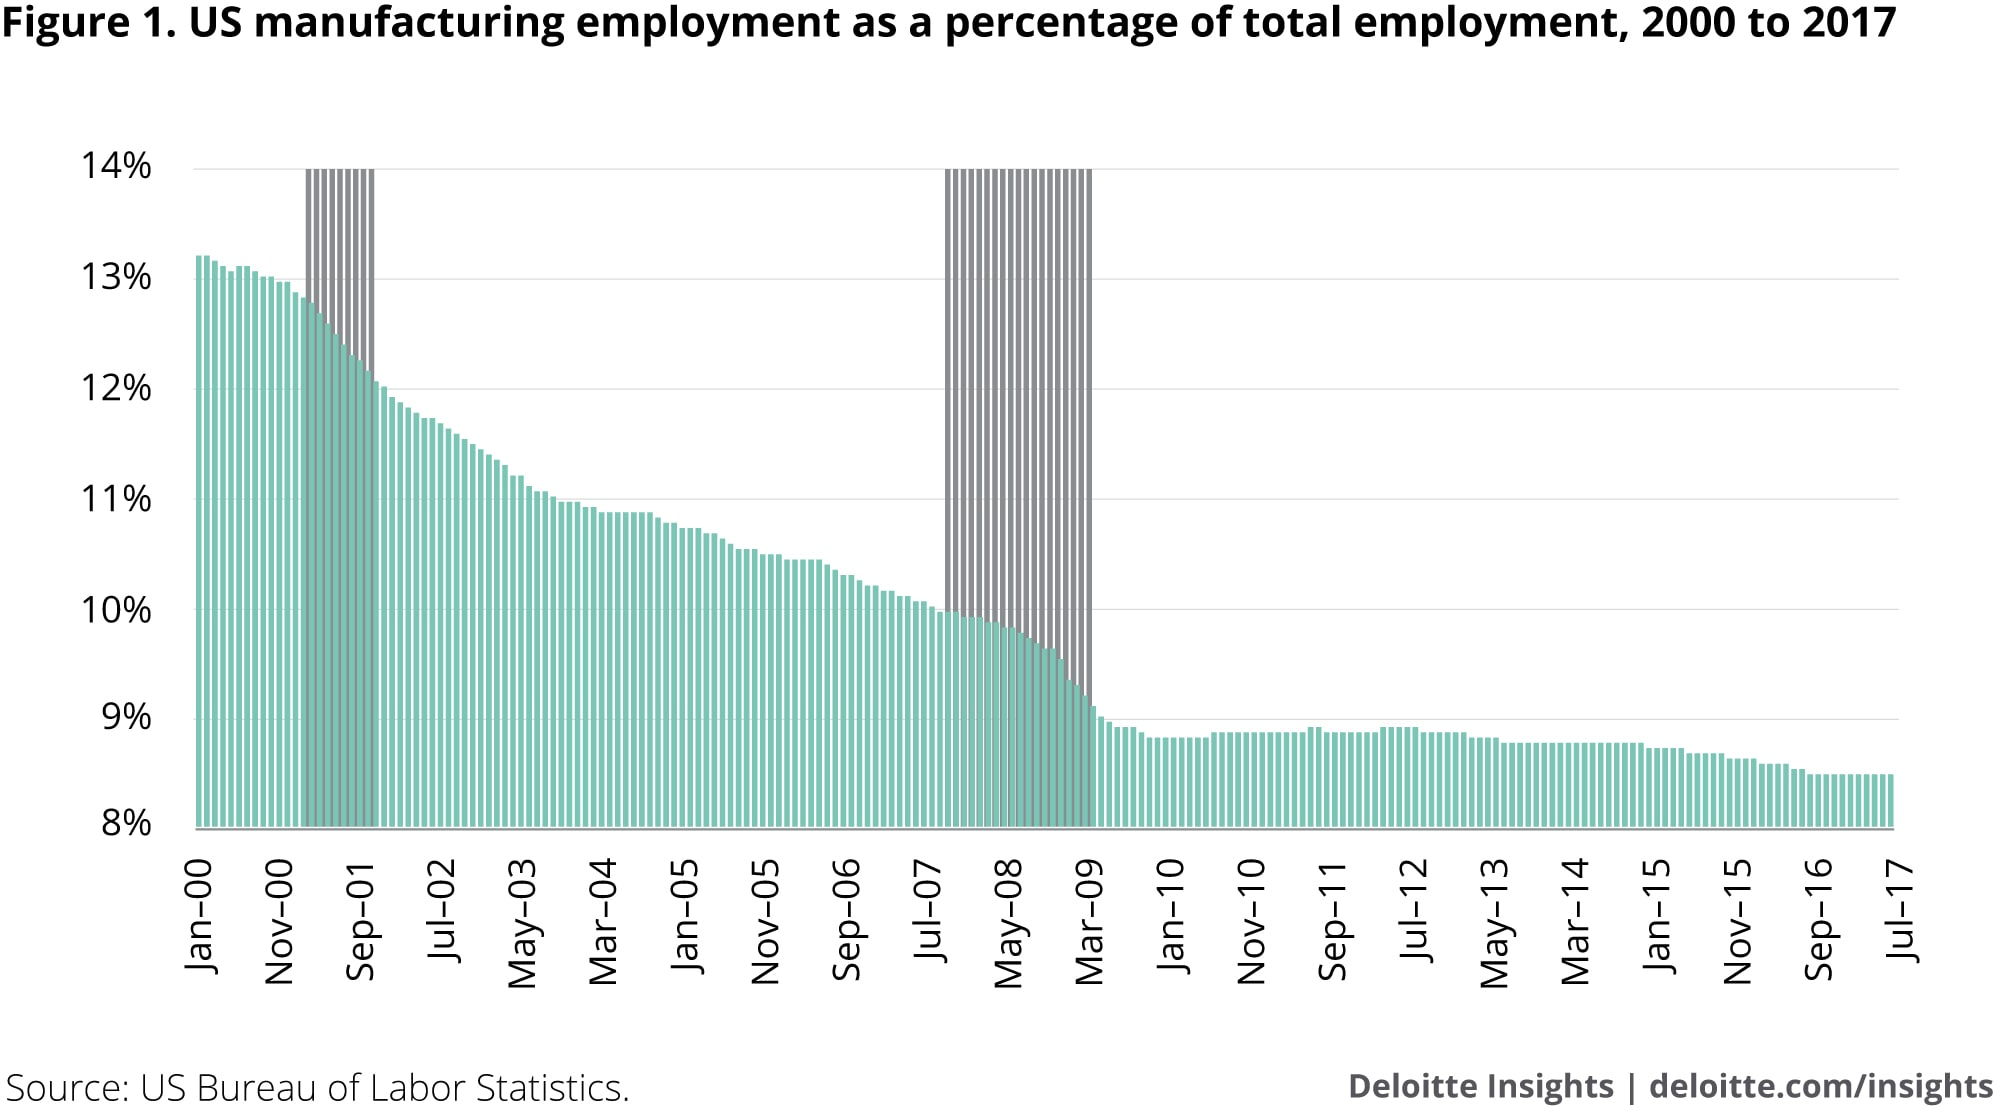 US manufacturing employment as a percentage of total employment, 2000 to 2017